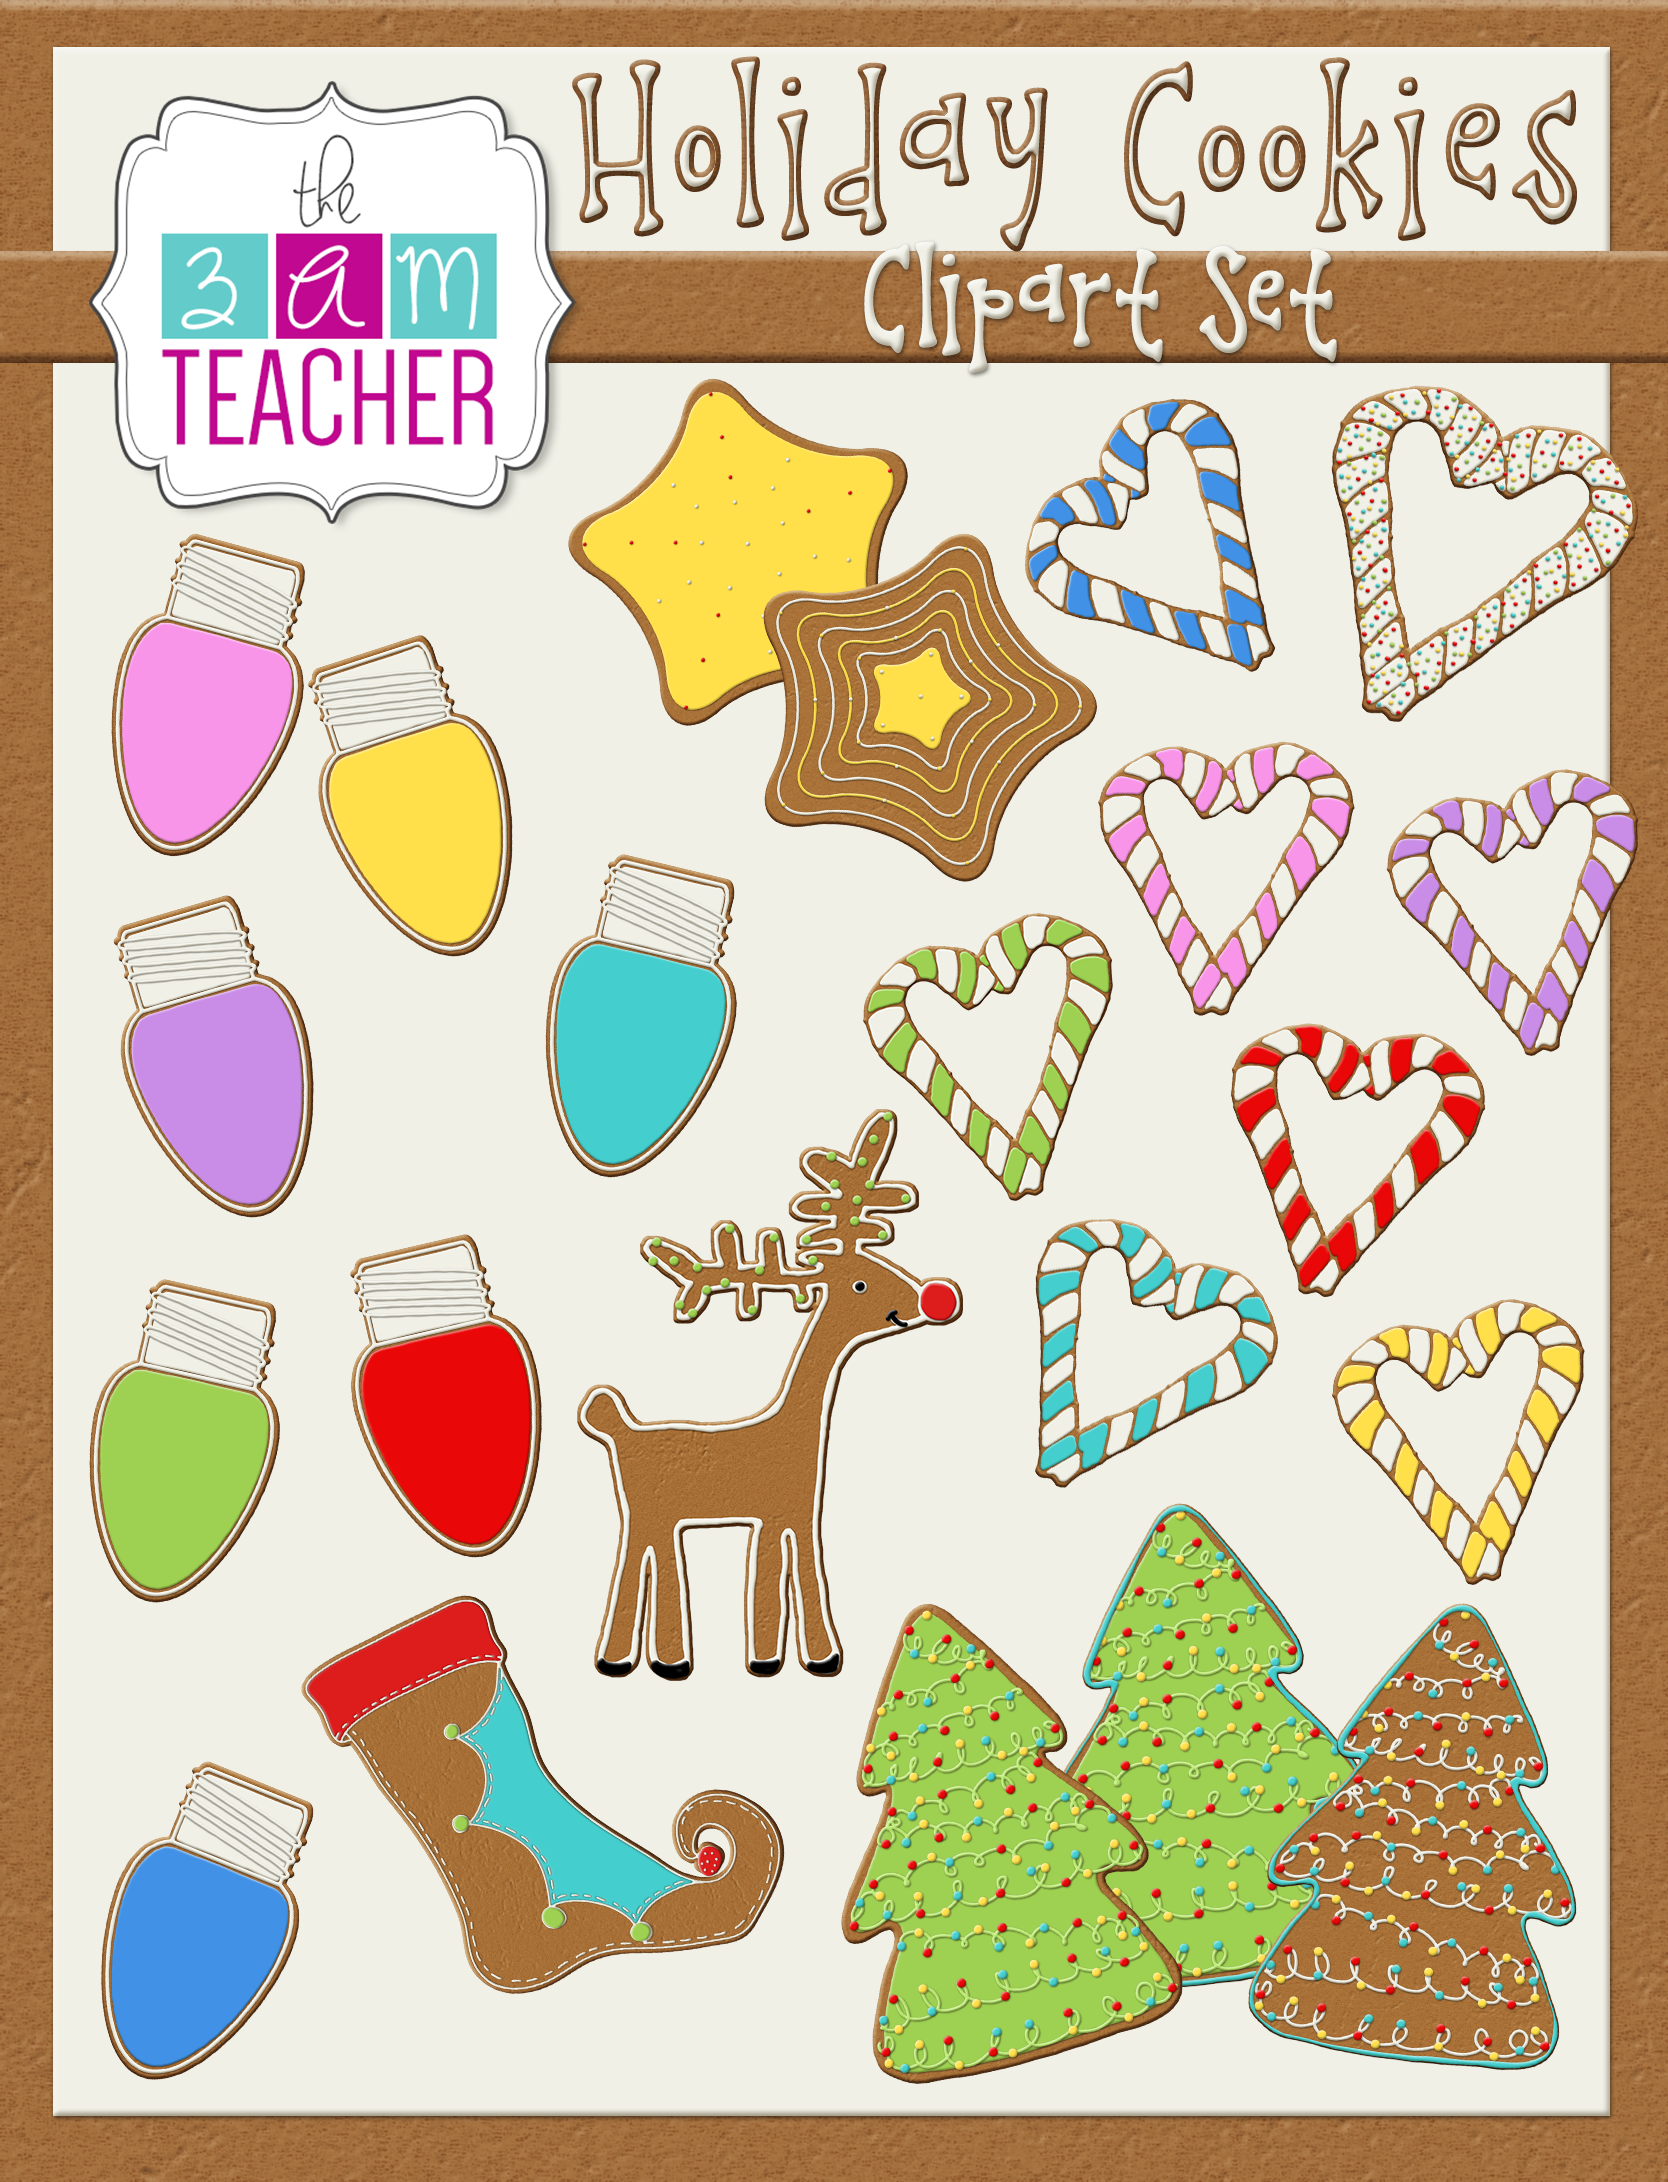 small resolution of colorful gingerbread holiday cookie clipart images by the 3am teacher 5 00